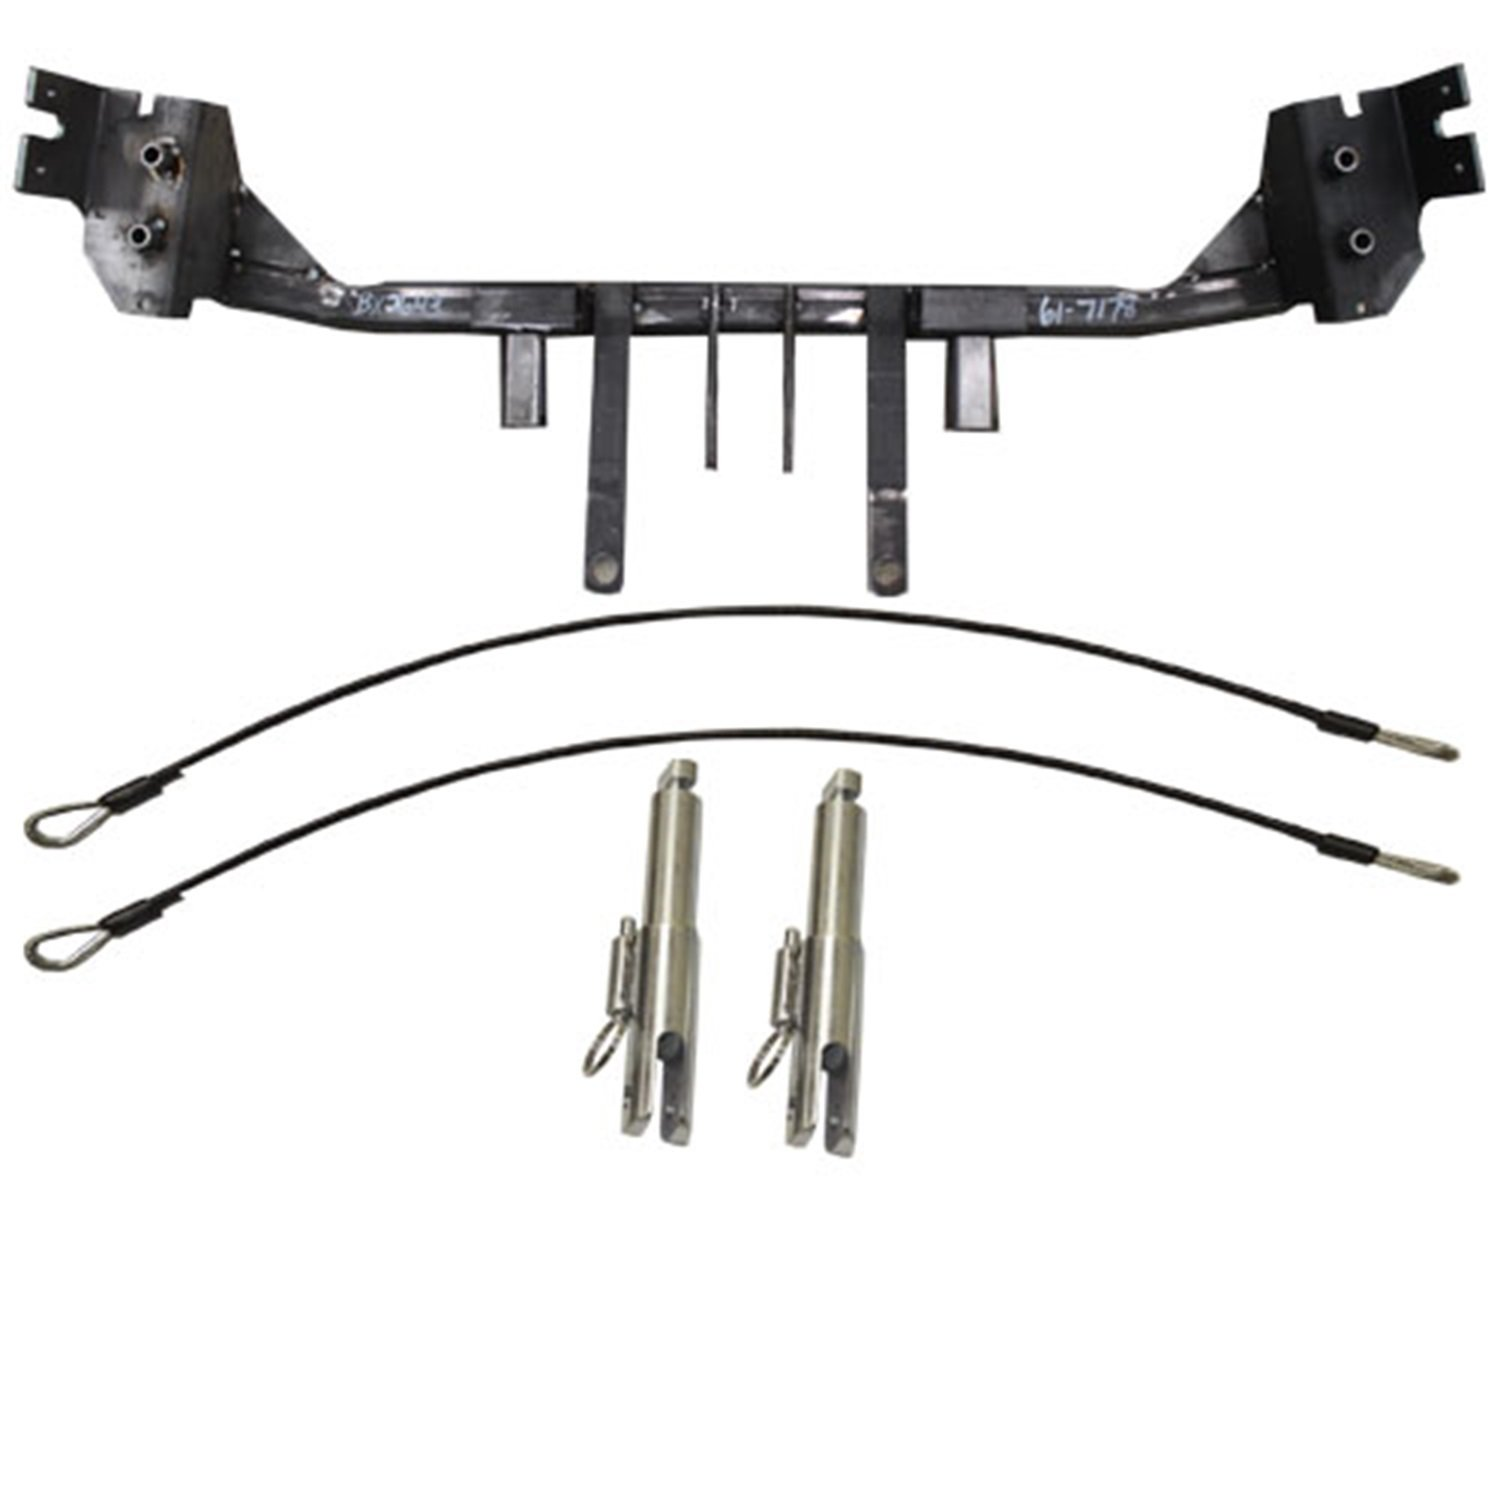 Blue Ox BX2643 Baseplate for Ford Taurus